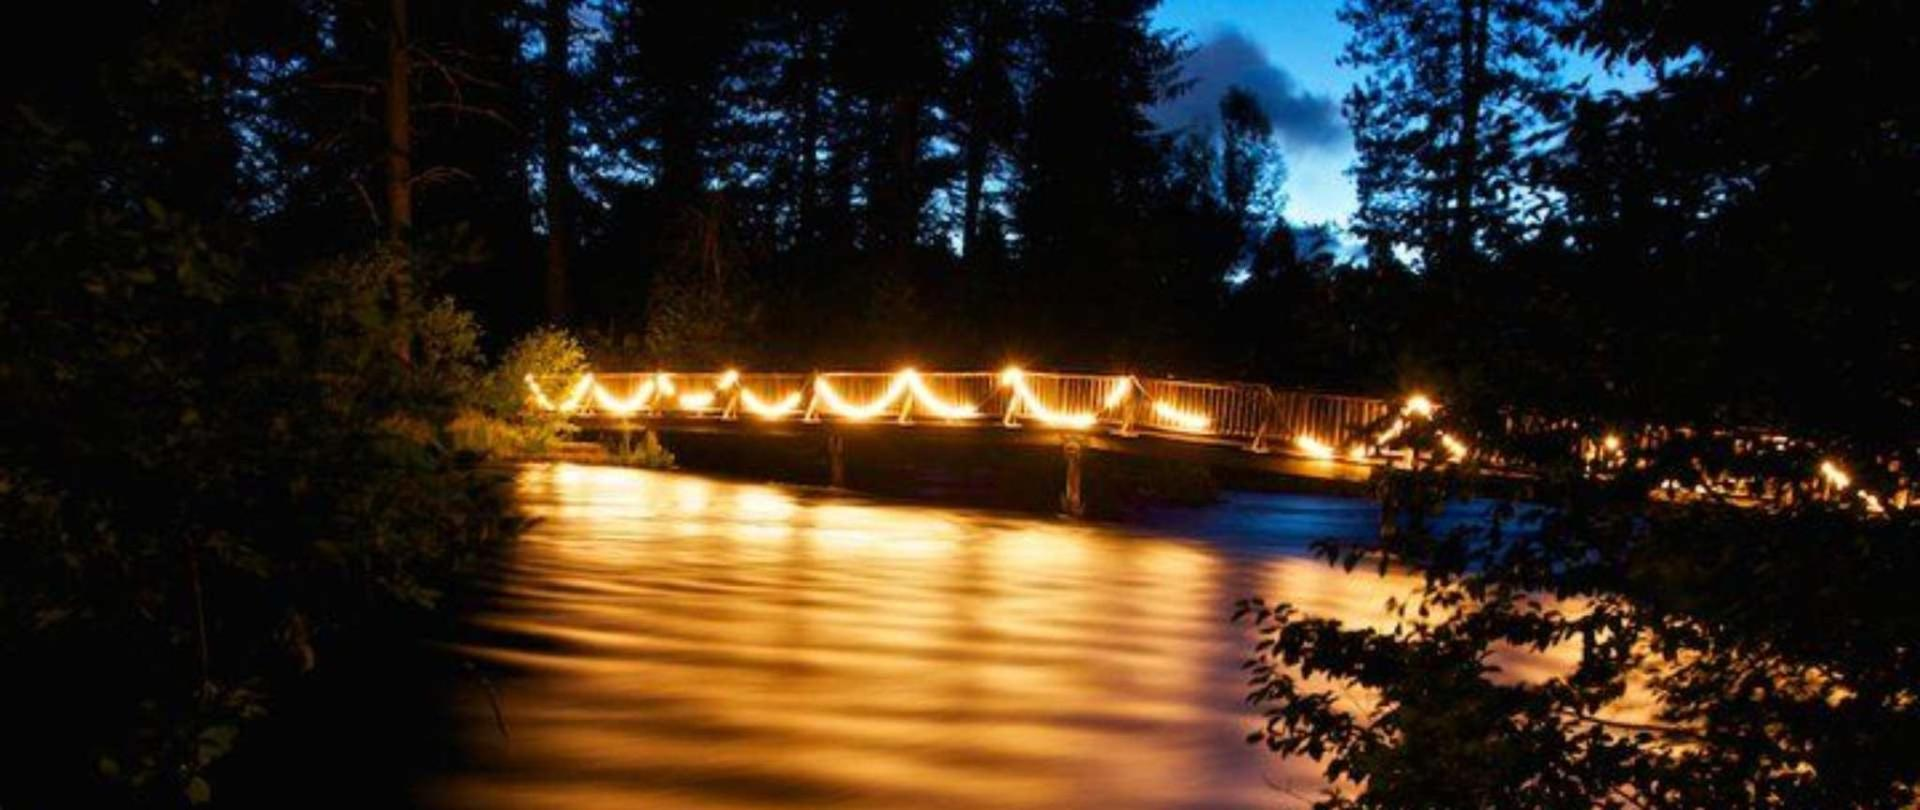 The foot bridge at Cold Springs Resort is beautifully illuminated at night, guiding guests back to their cabins and RVs